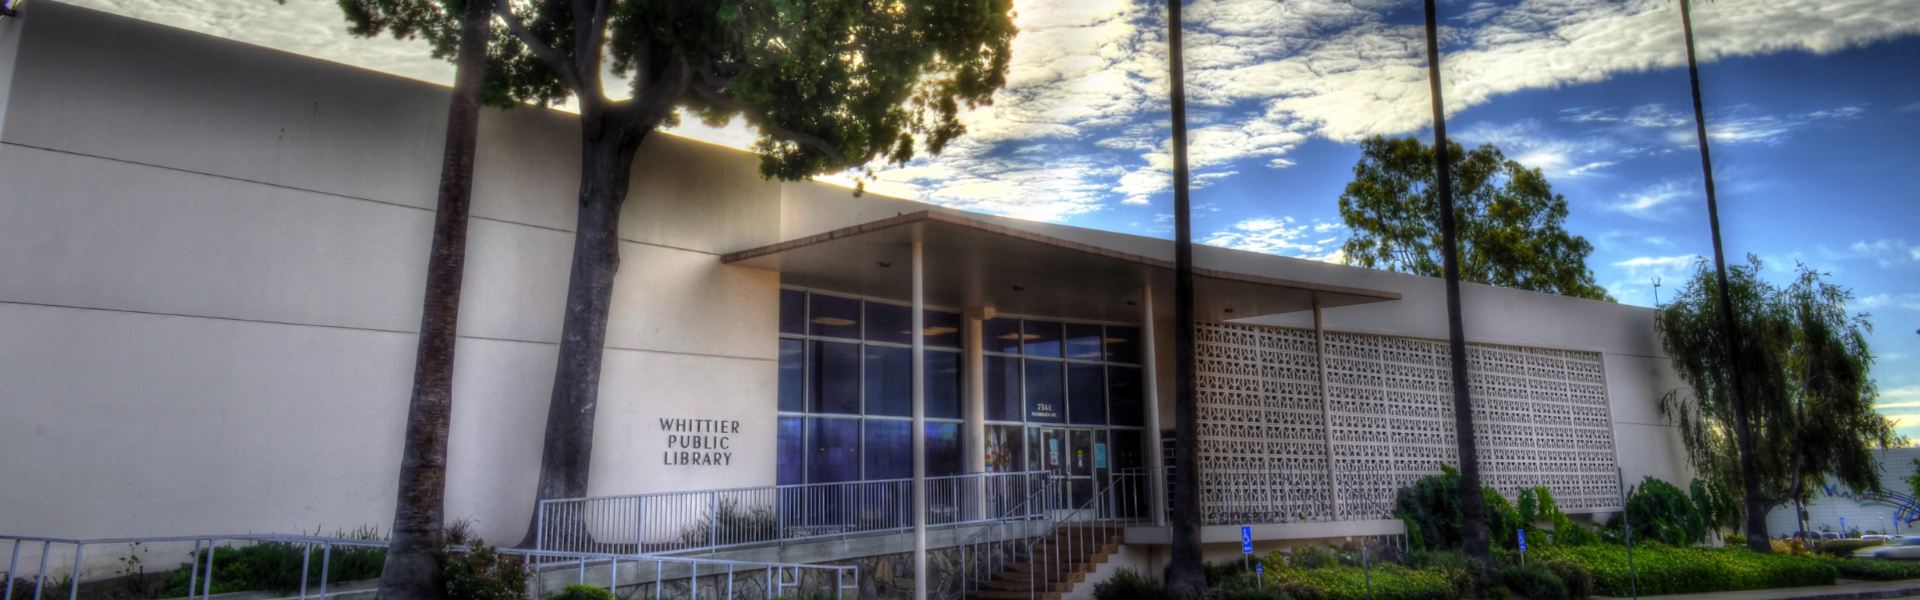 Whittier Central Library